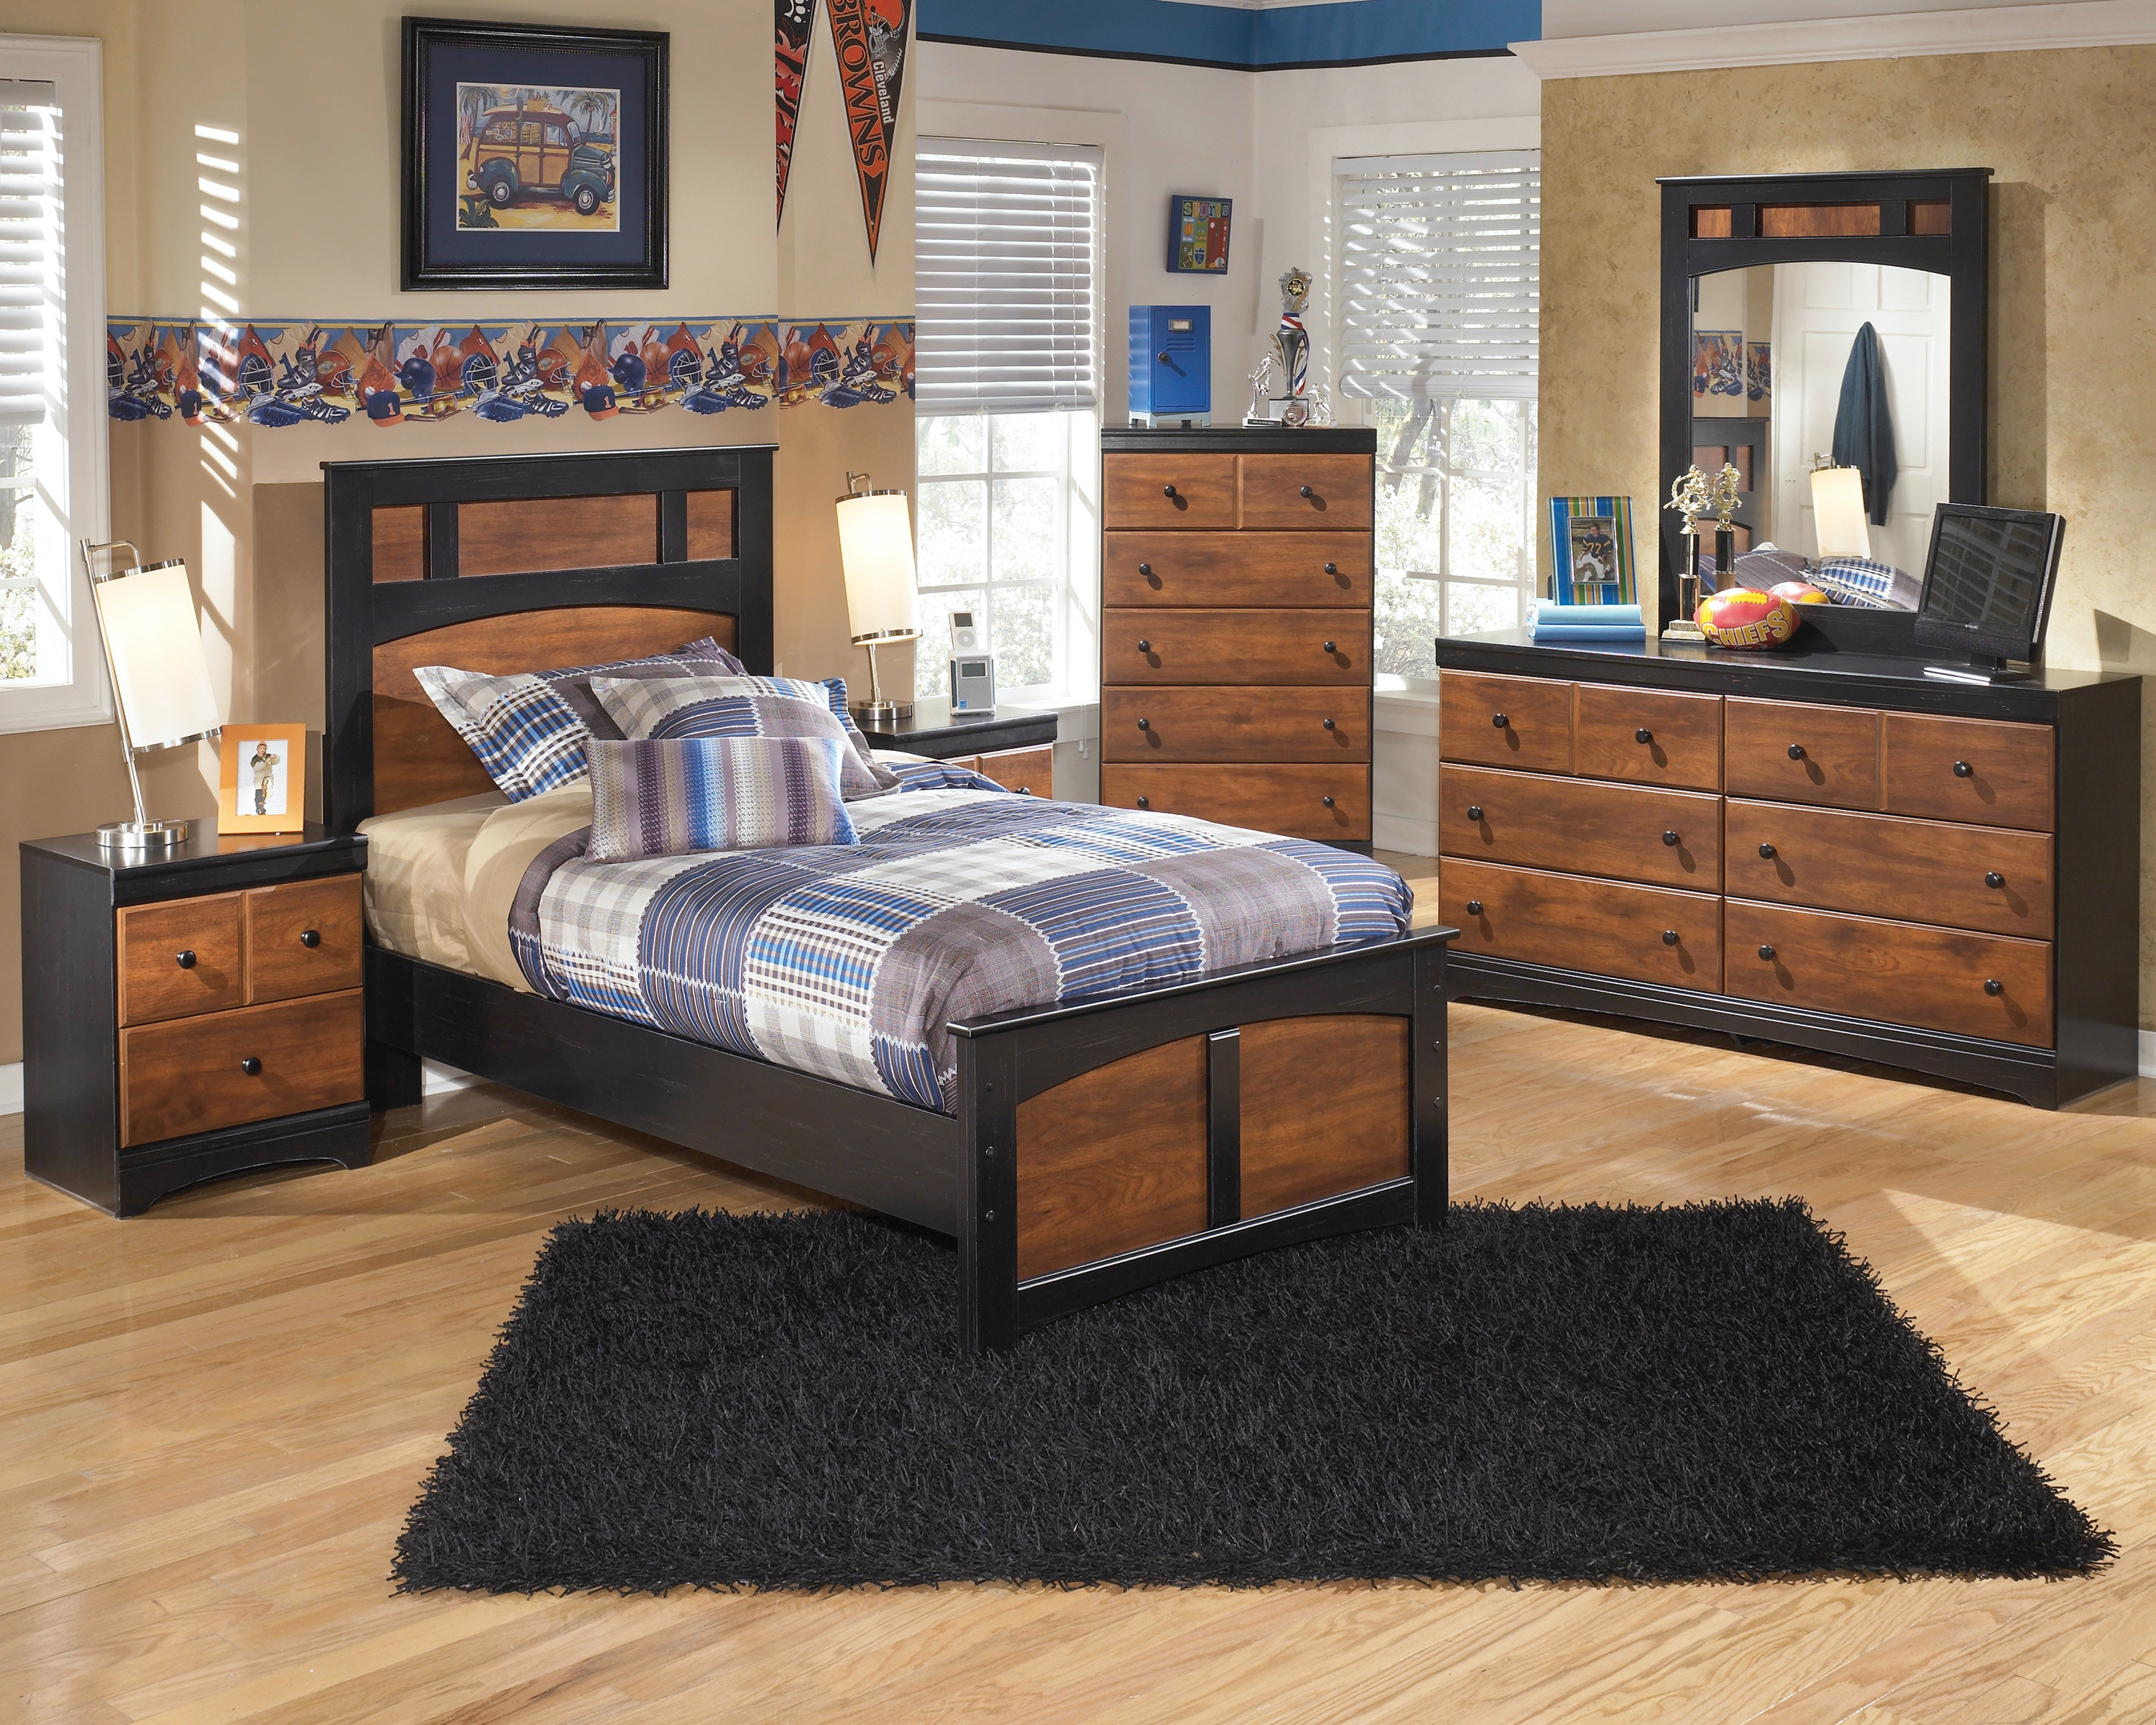 Cute Twin Bedroom Set Minimalist